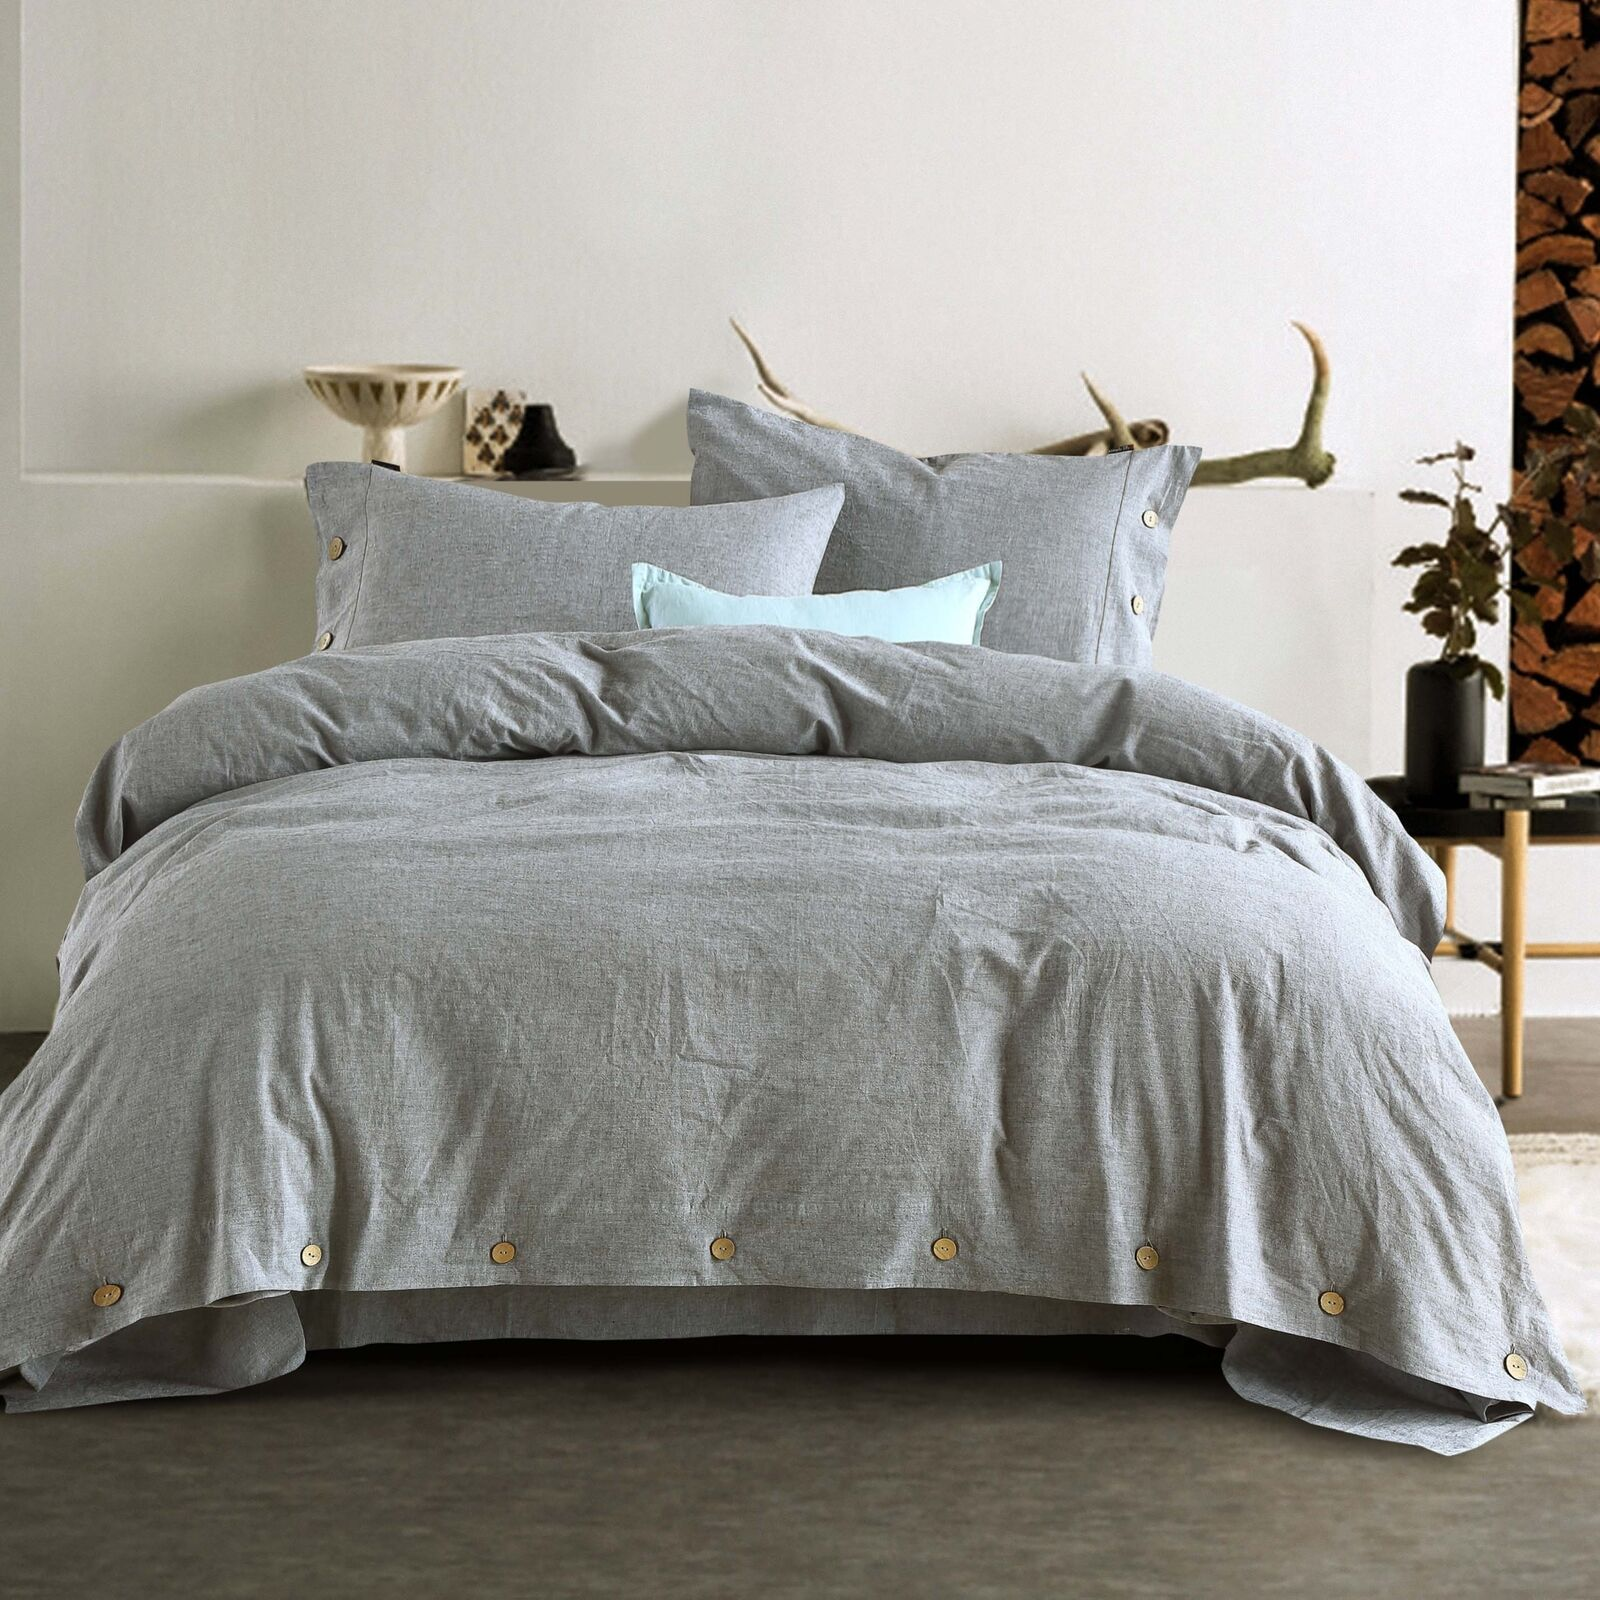 Linen Duvet Cover Pillowcases King Queen Twin Cotton Flax Bedding Set US Size Y1